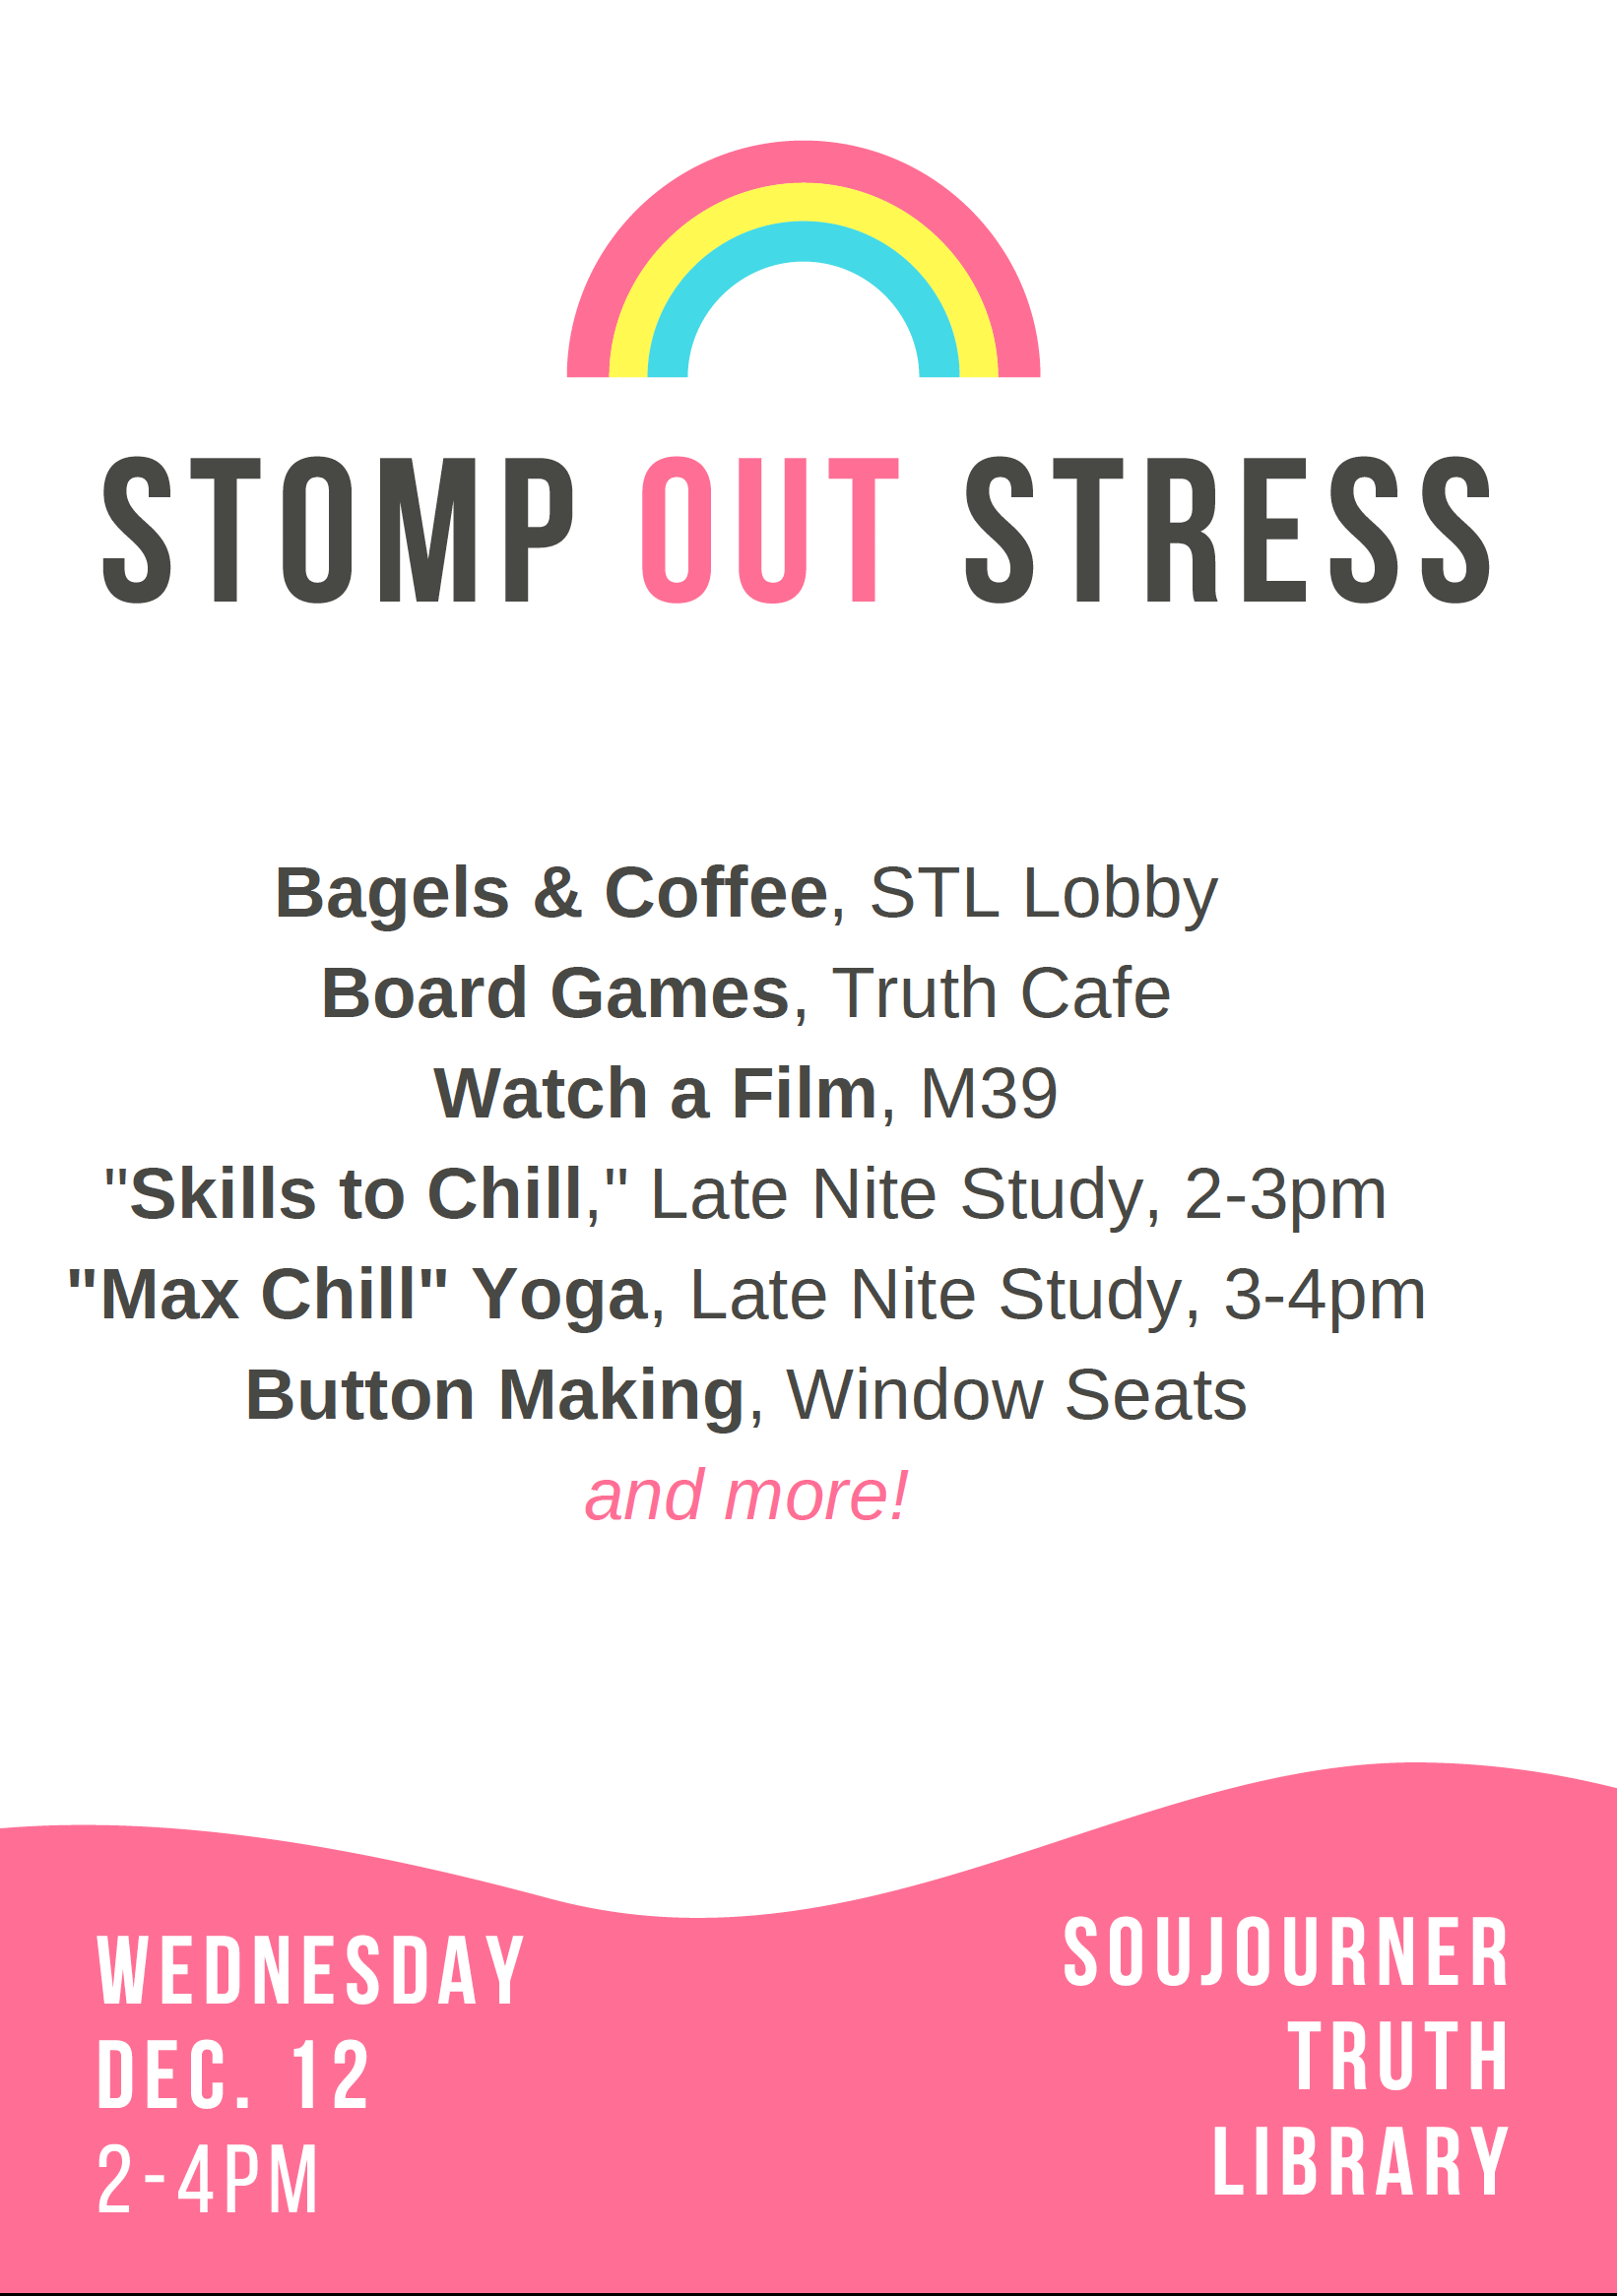 """Wednesday Dec 12, 2 to 4 PM at the Library With these stress busting activities:      Bagels & Coffee, STL Lobby     Board Games, Truth Cafe     Watch a Film, M39     """"Skills to Chill,"""" Late Nite Study, 2-3pm     """"Max Chill"""" Yoga, Late Nite Study, 3-4pm     Button Making, Window Seats         and more!"""